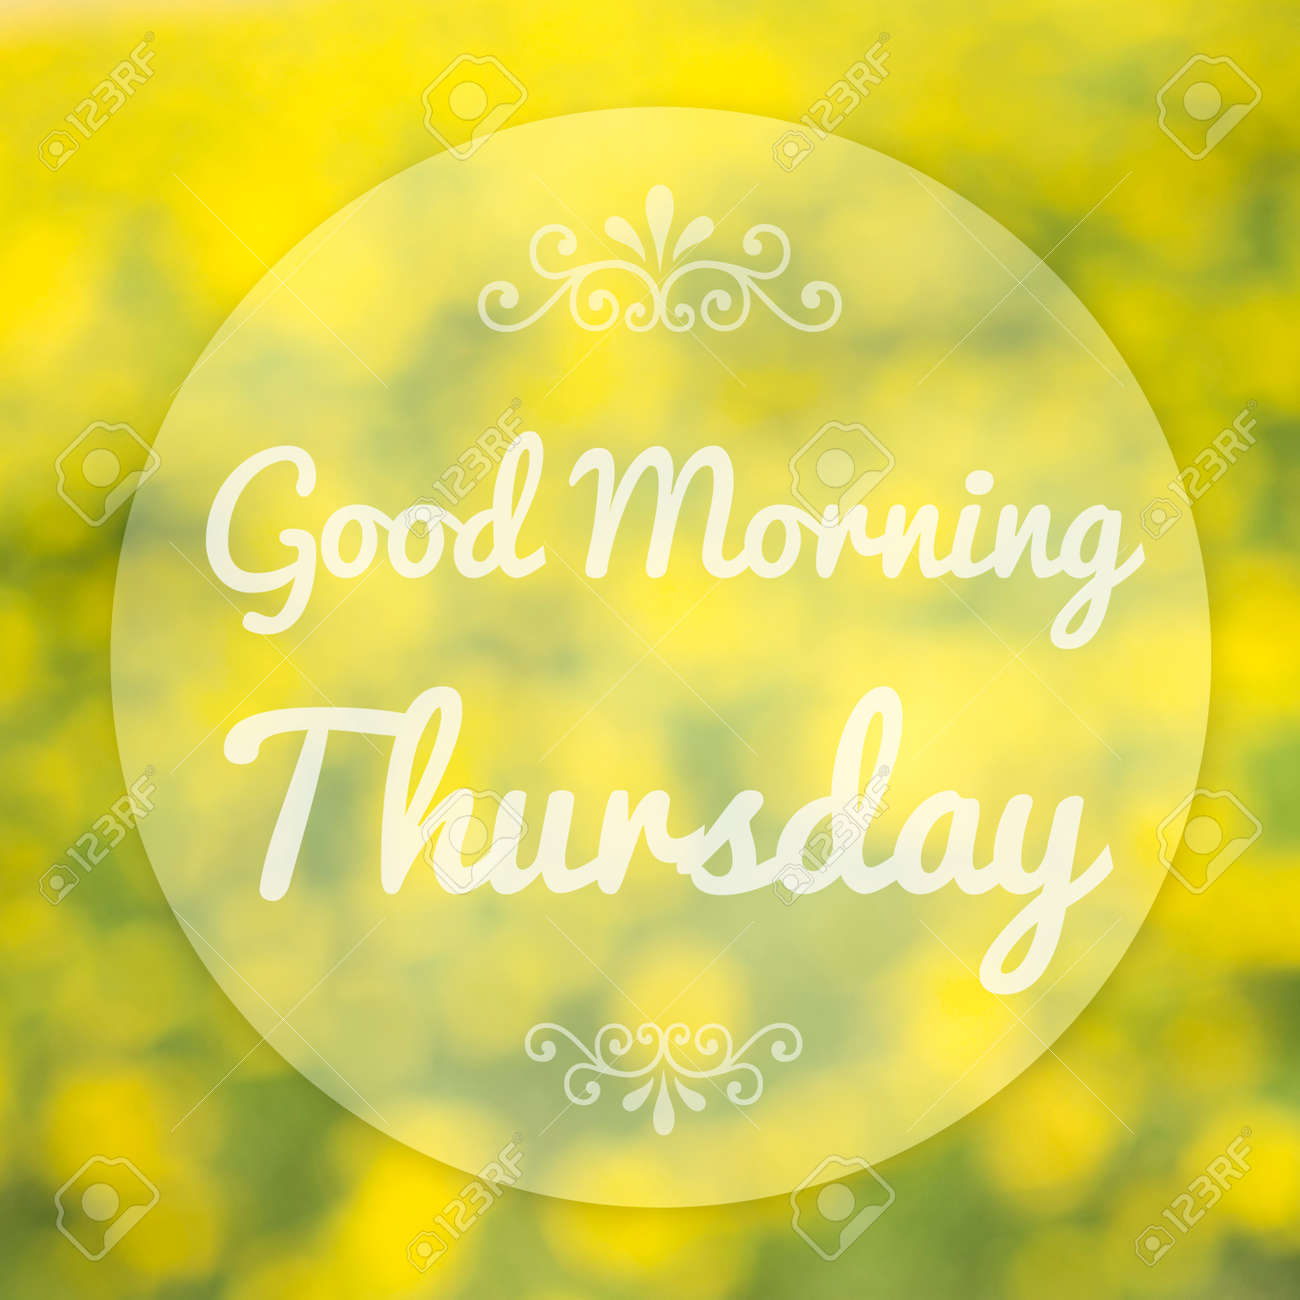 Good Morning Thursday On Blur Background Stock Photo Picture And